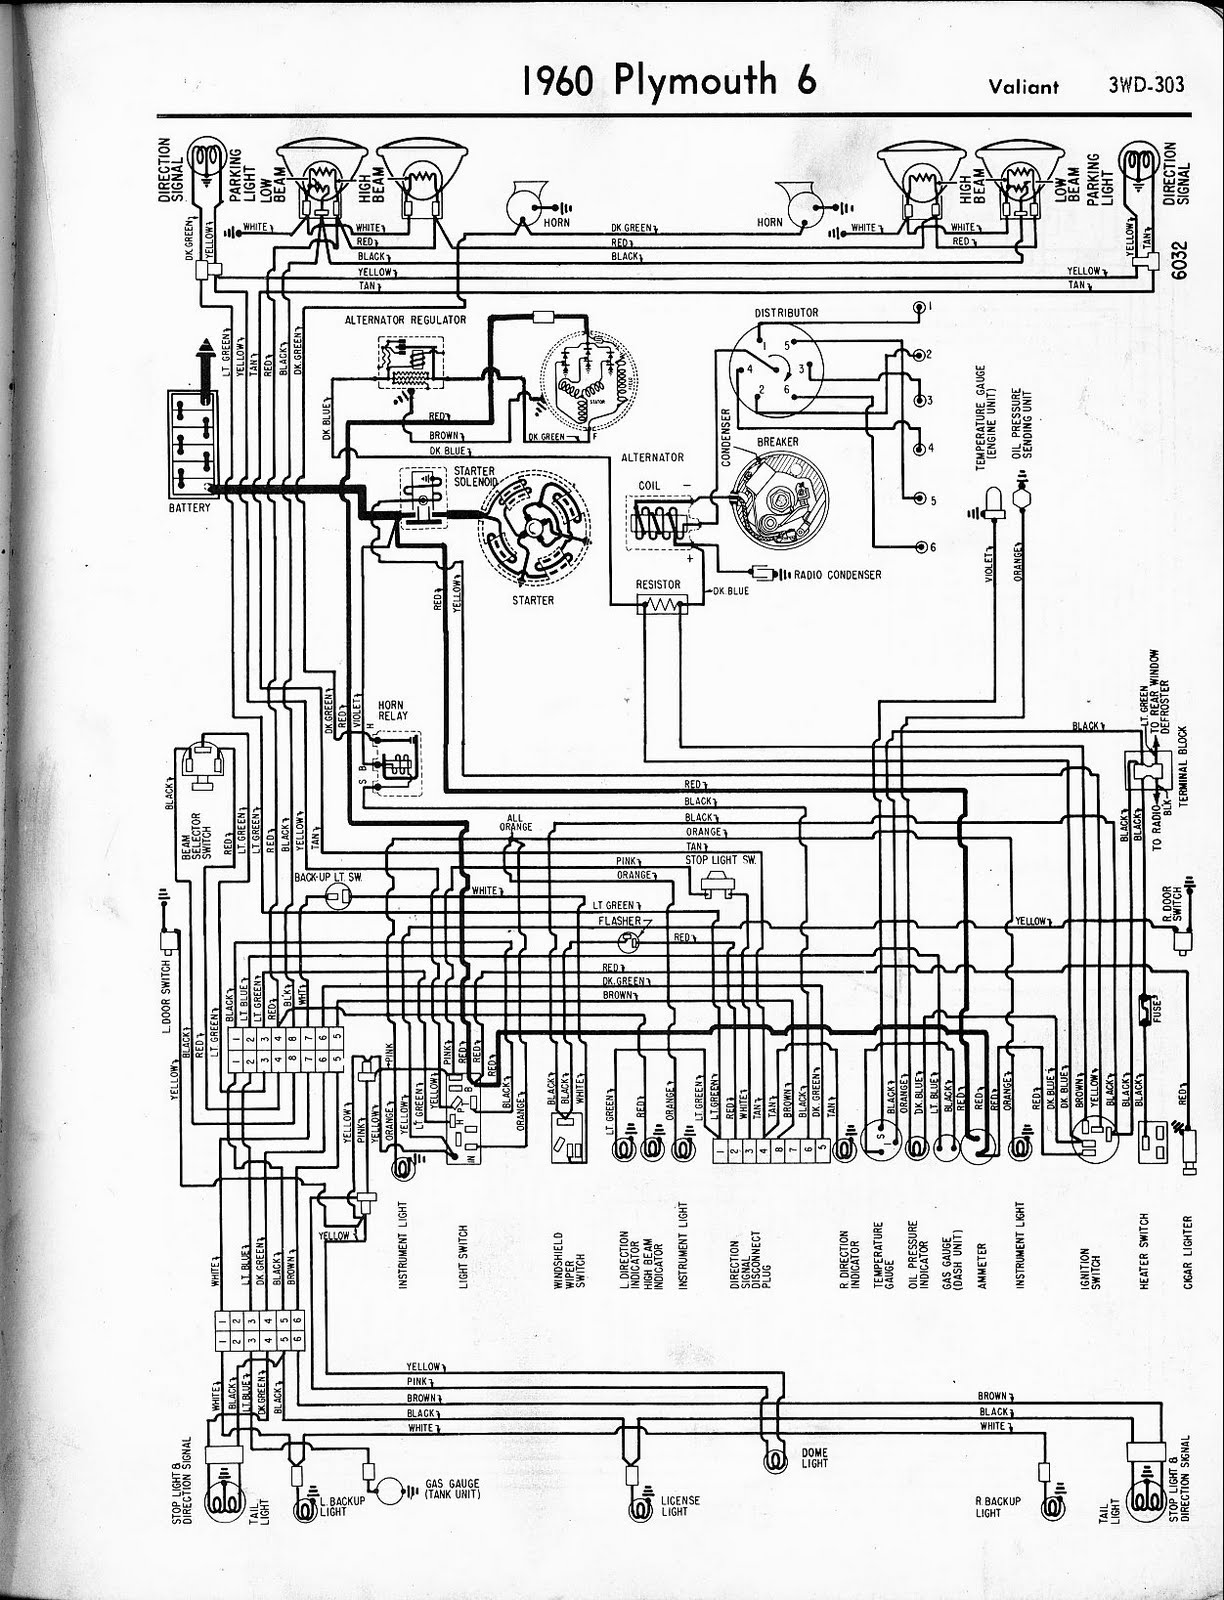 vw 1600 engine fuel injection diagram vw fuel injection